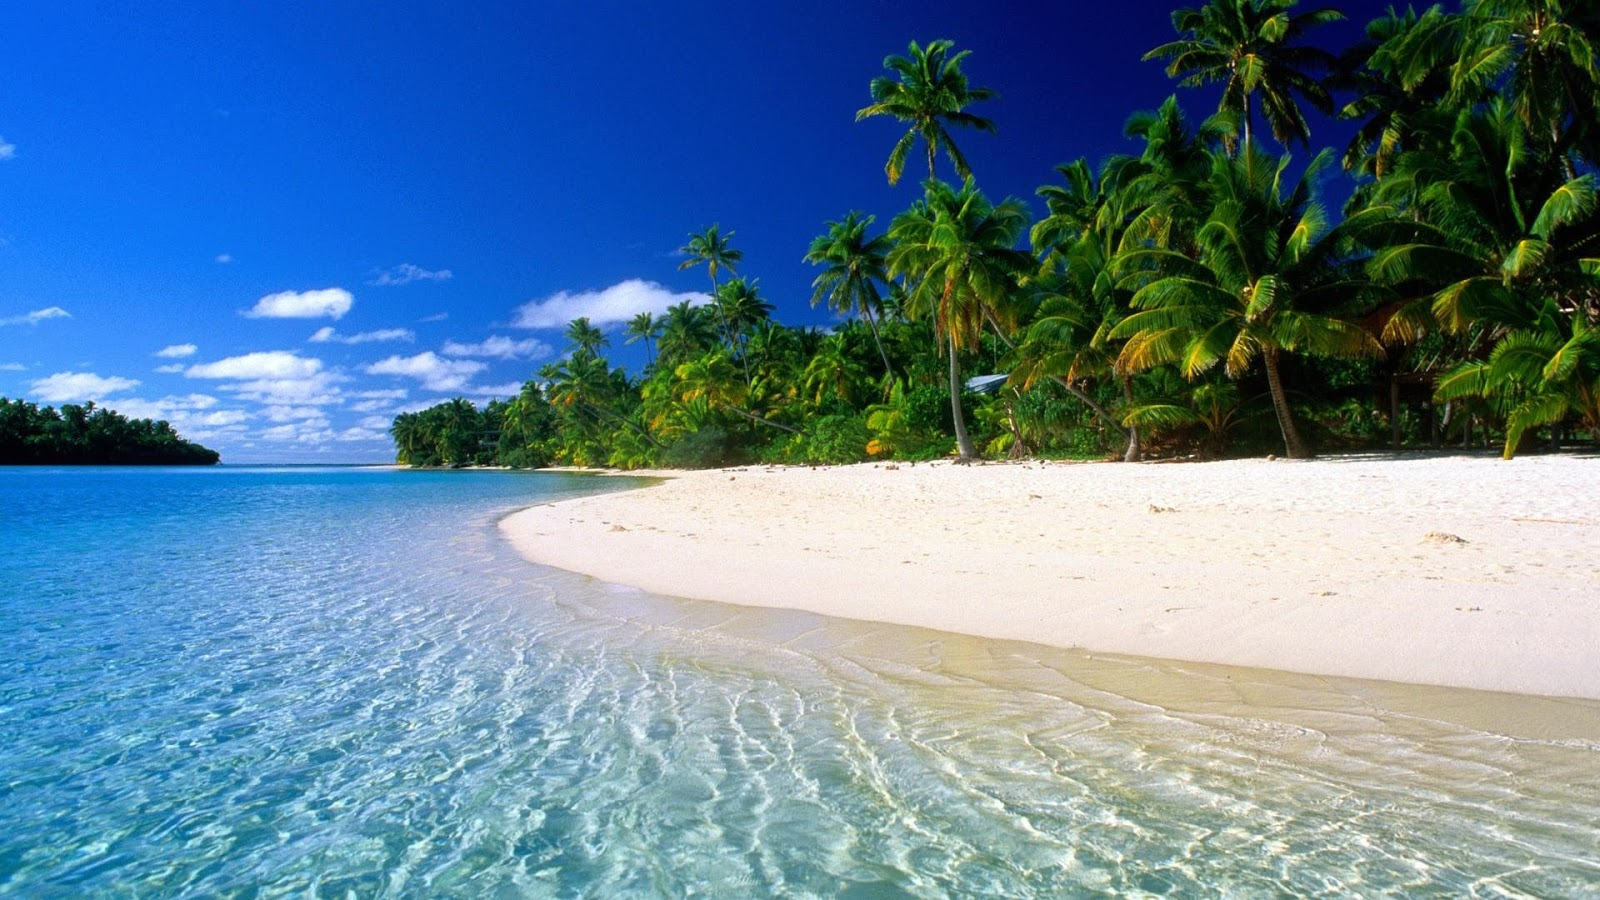 top 50 beach full hd wallpapers free downloads from desktop etc